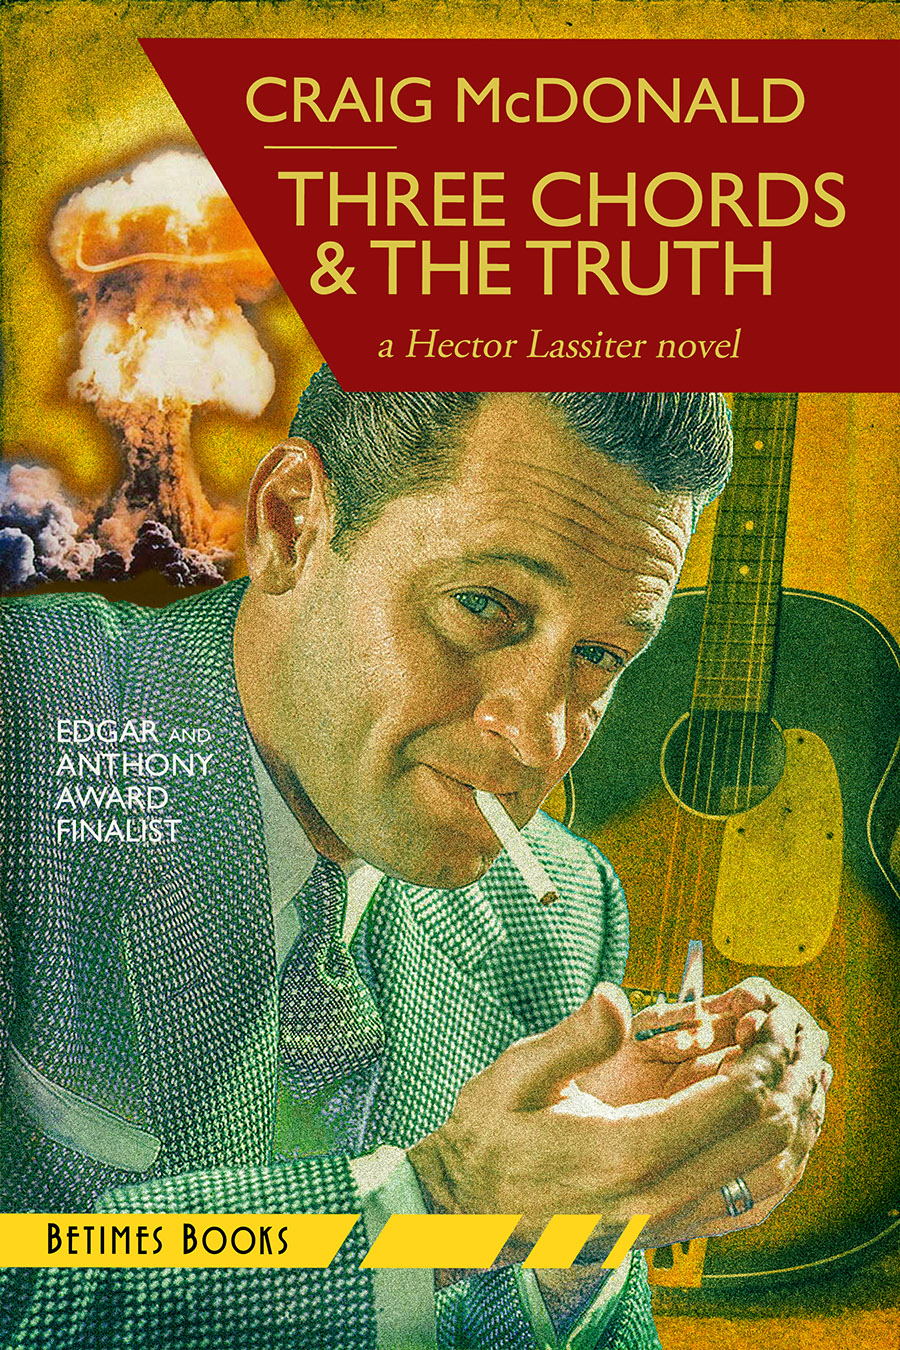 THREE CHORDS & THE TRUTH (Hector Lassiter series #10)